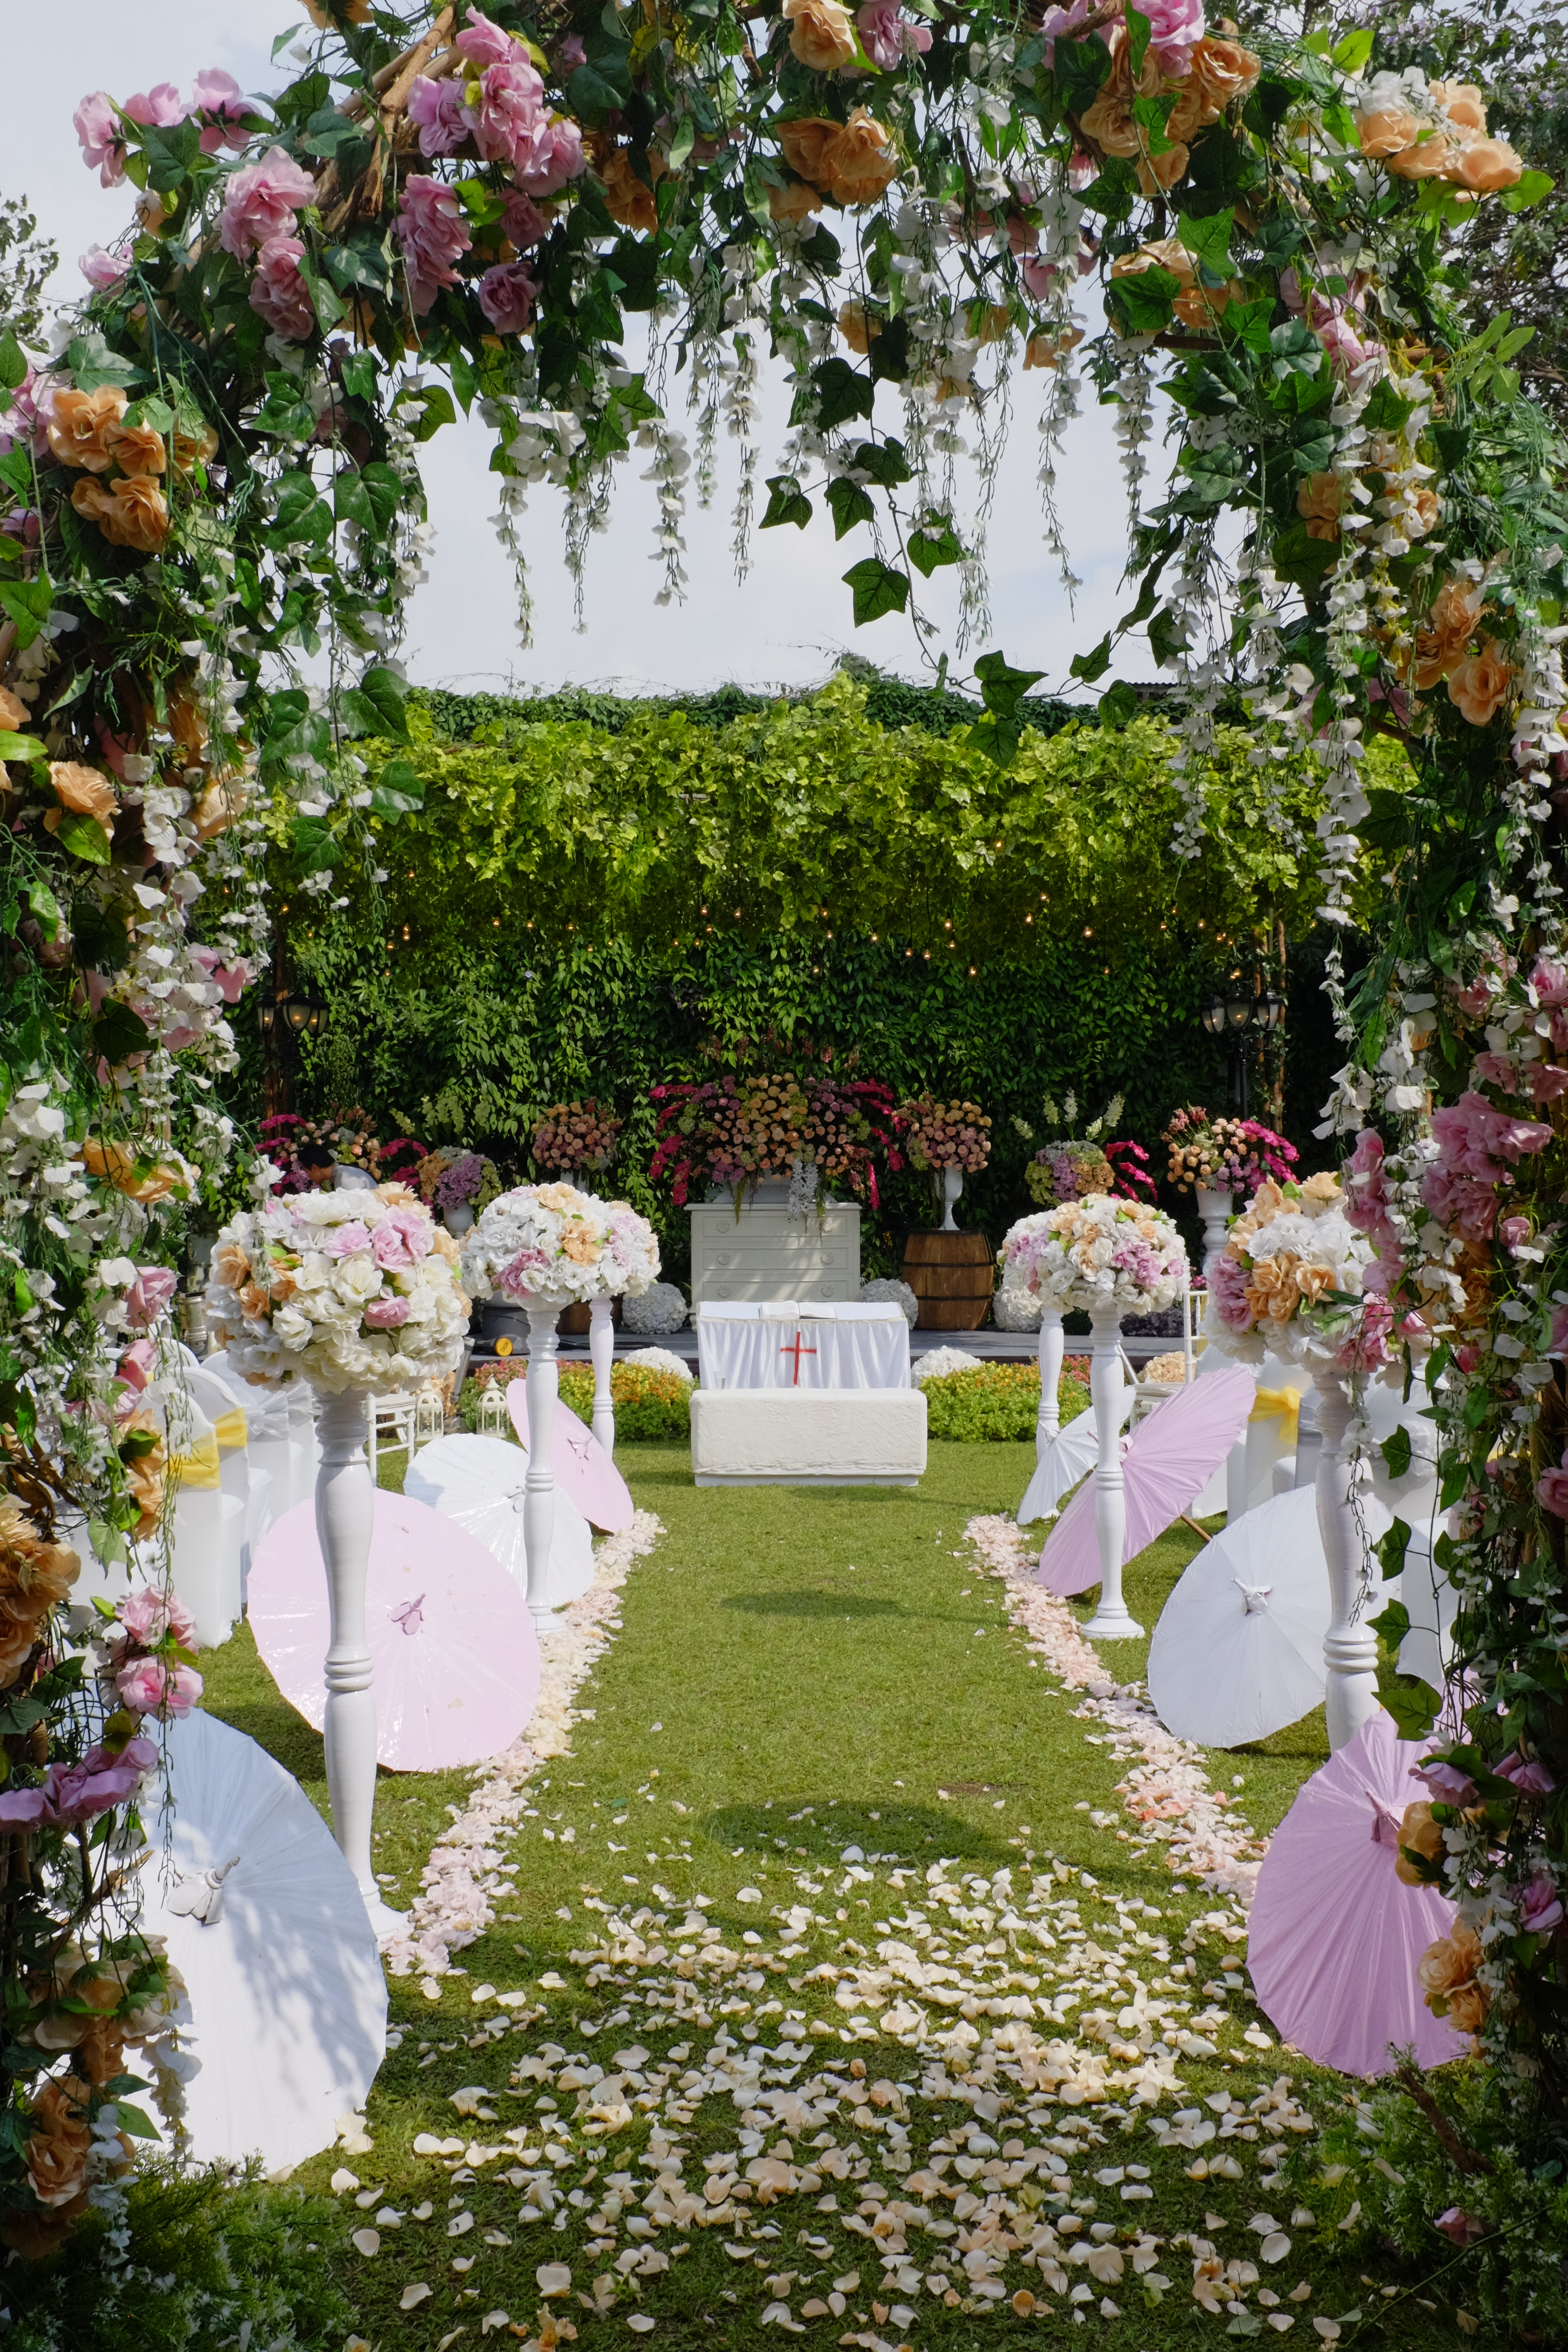 towers garden wedding decoration sheraton bandung hotel towers bridestory. Black Bedroom Furniture Sets. Home Design Ideas